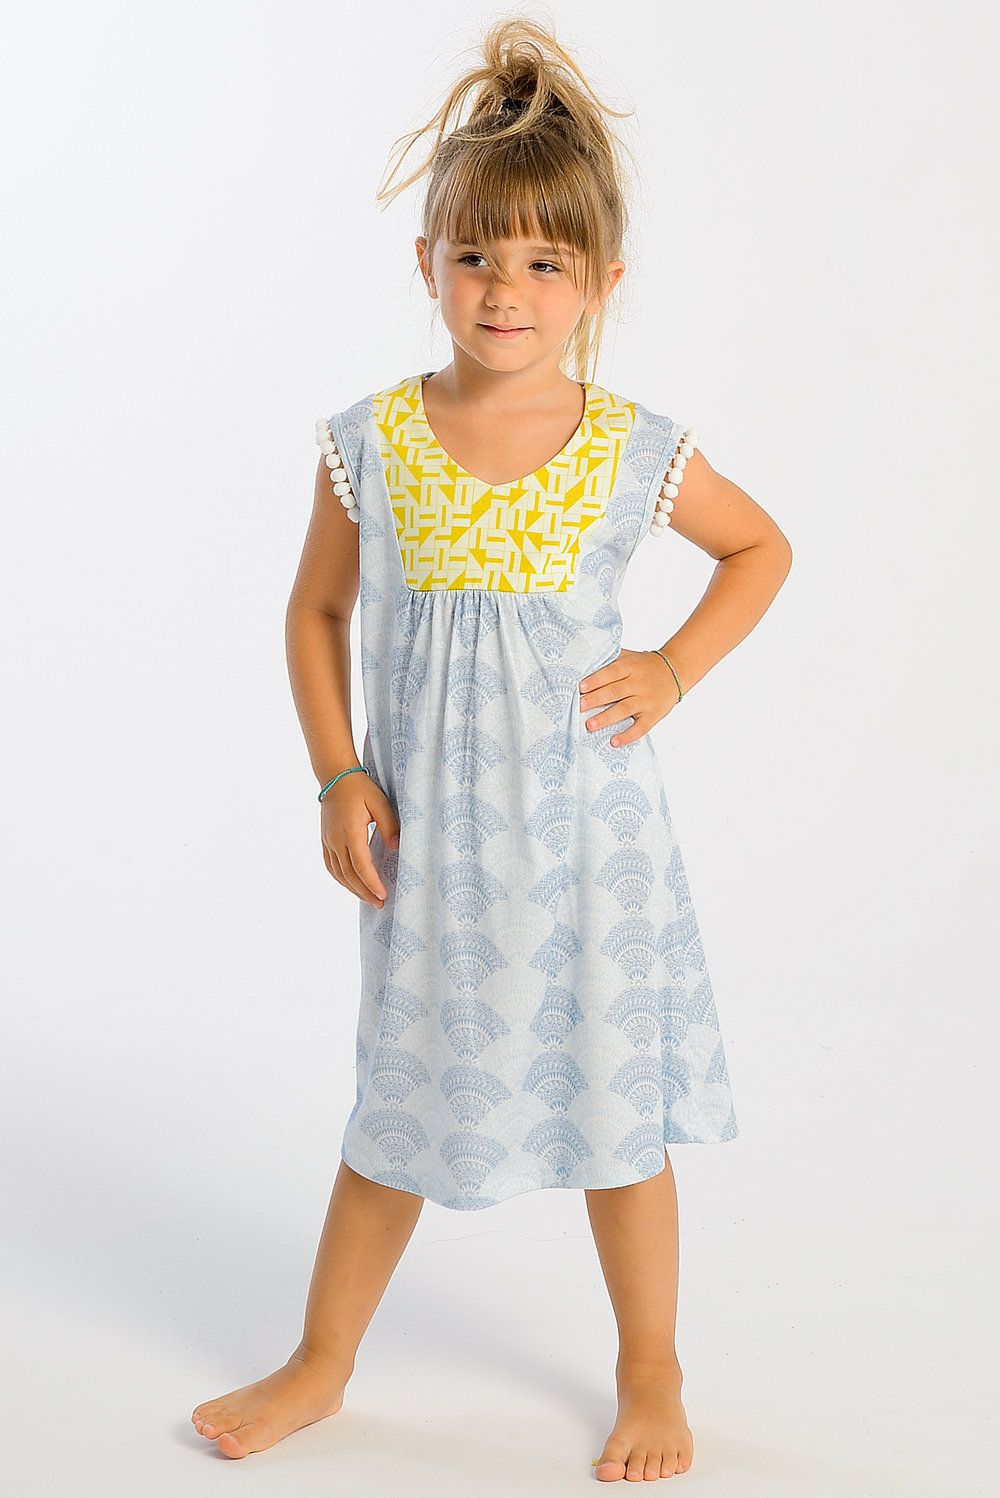 ripis-kids-caftan-blue-yellow-front.jpg